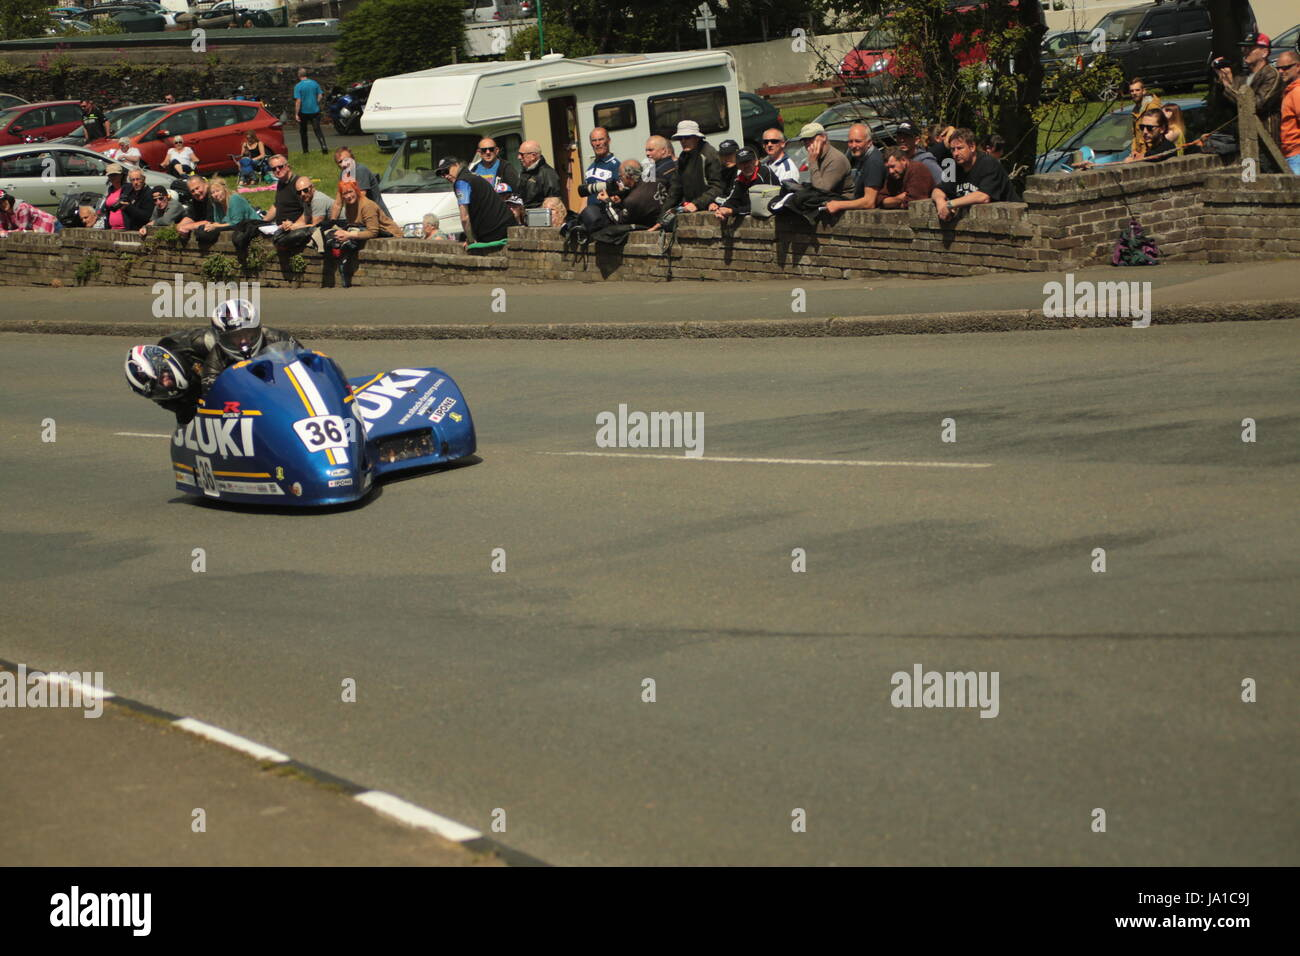 Isle of Man TT Races, Sidecar, Supersport/Lightweight/Newcomers (all